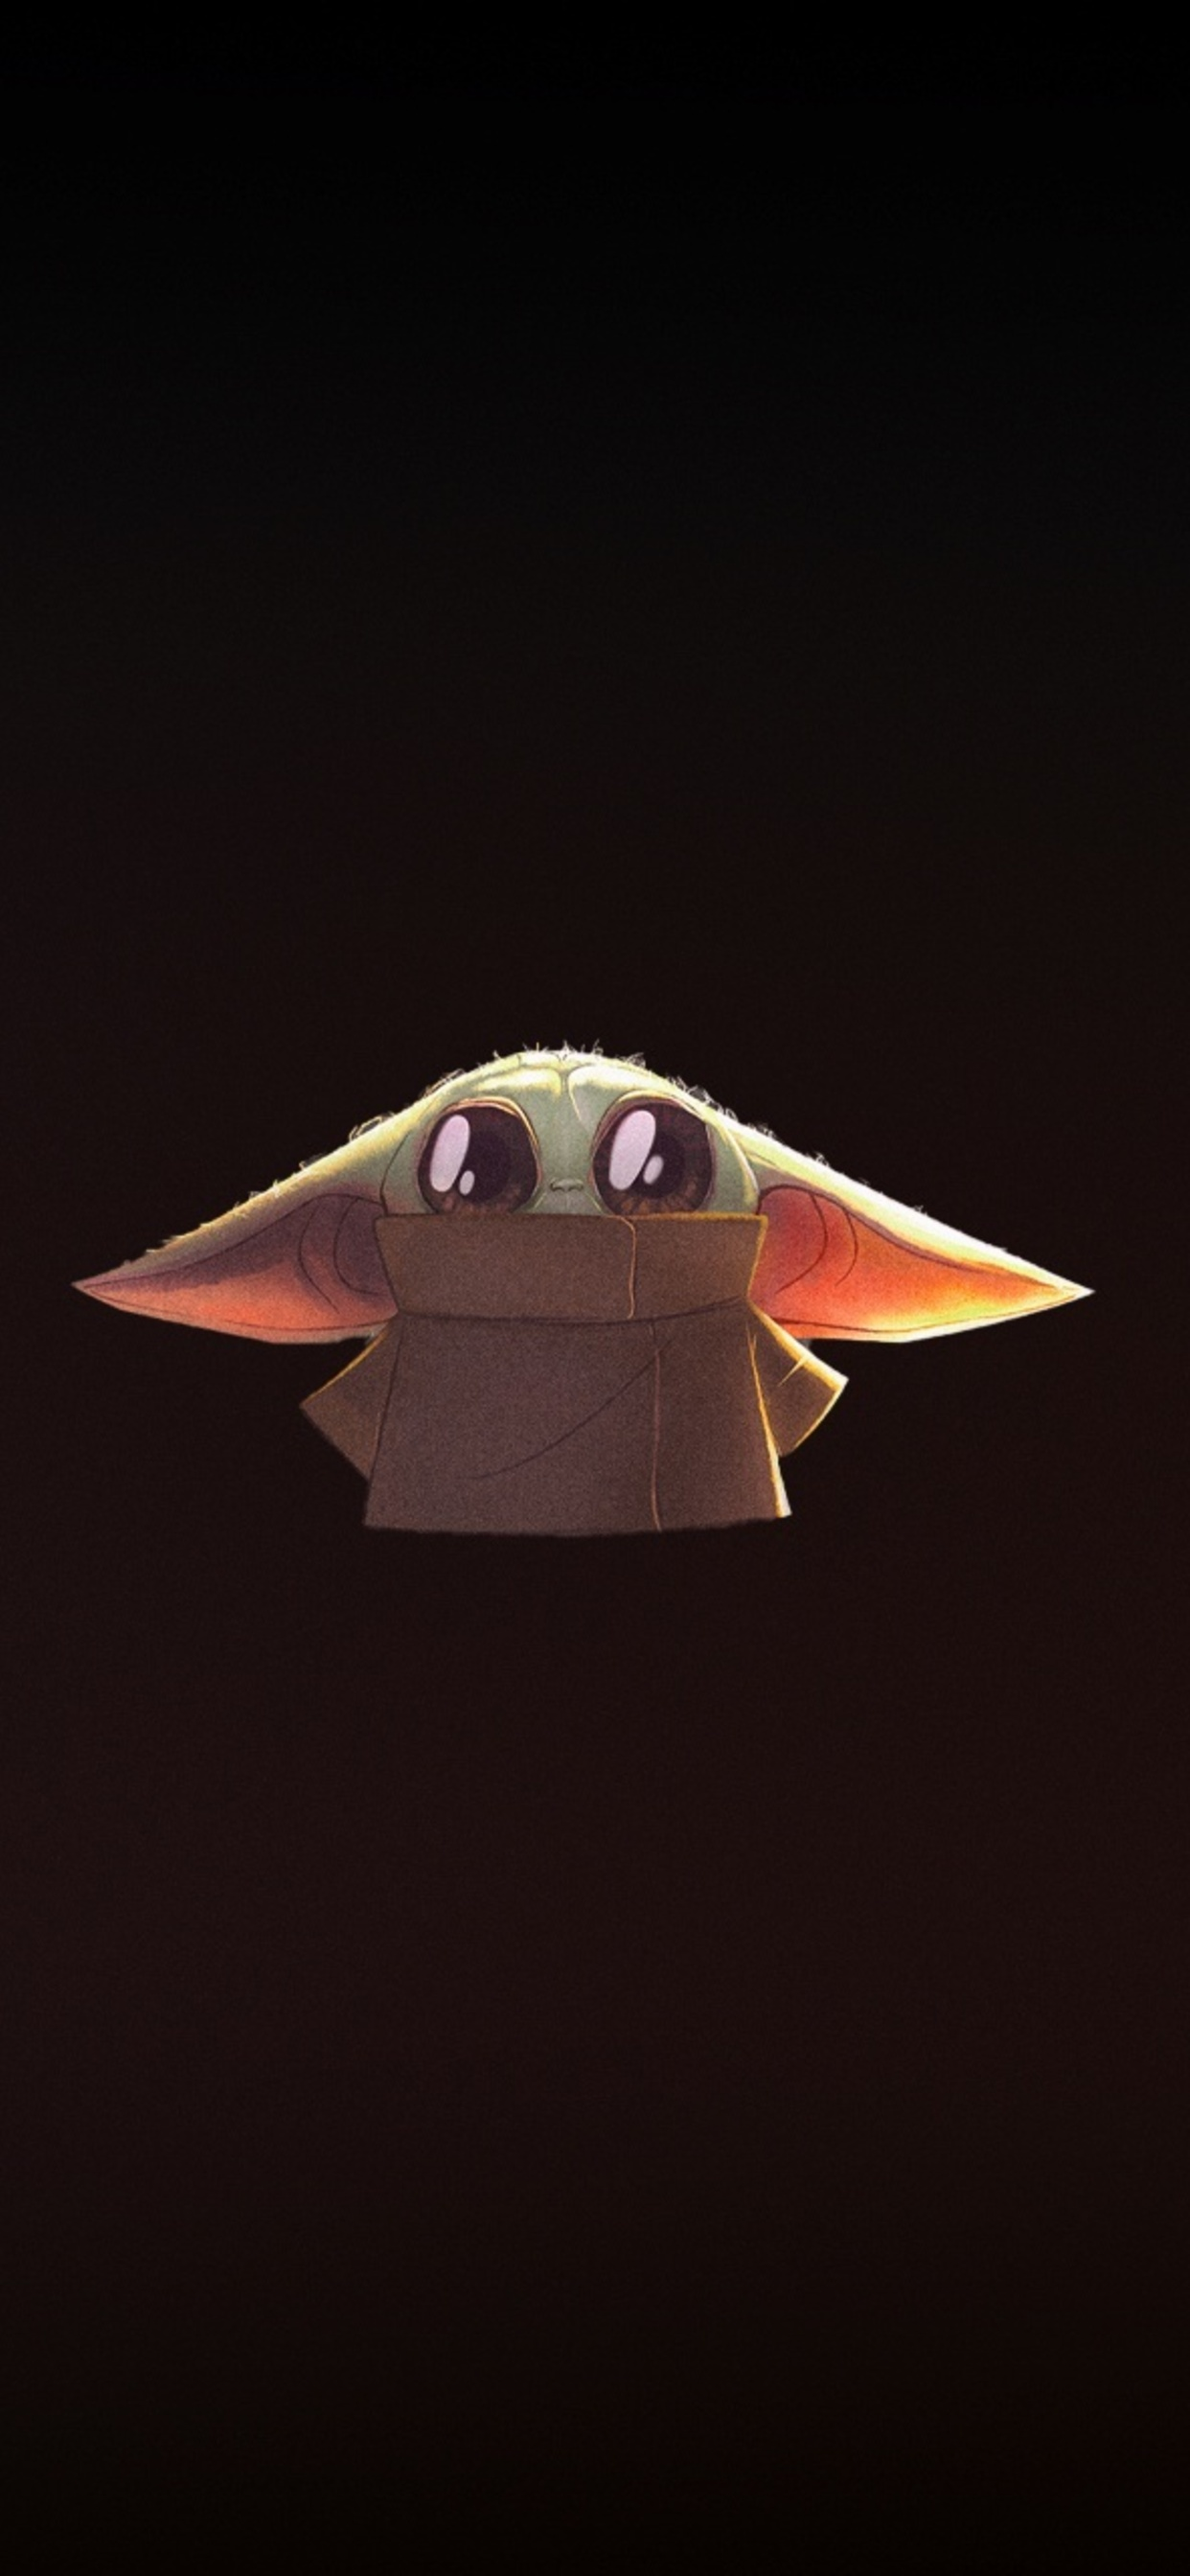 1242x2688 Baby Yoda Star Wars Minimal Iphone Xs Max Hd 4k Wallpapers Images Backgrounds Photos And Pictures